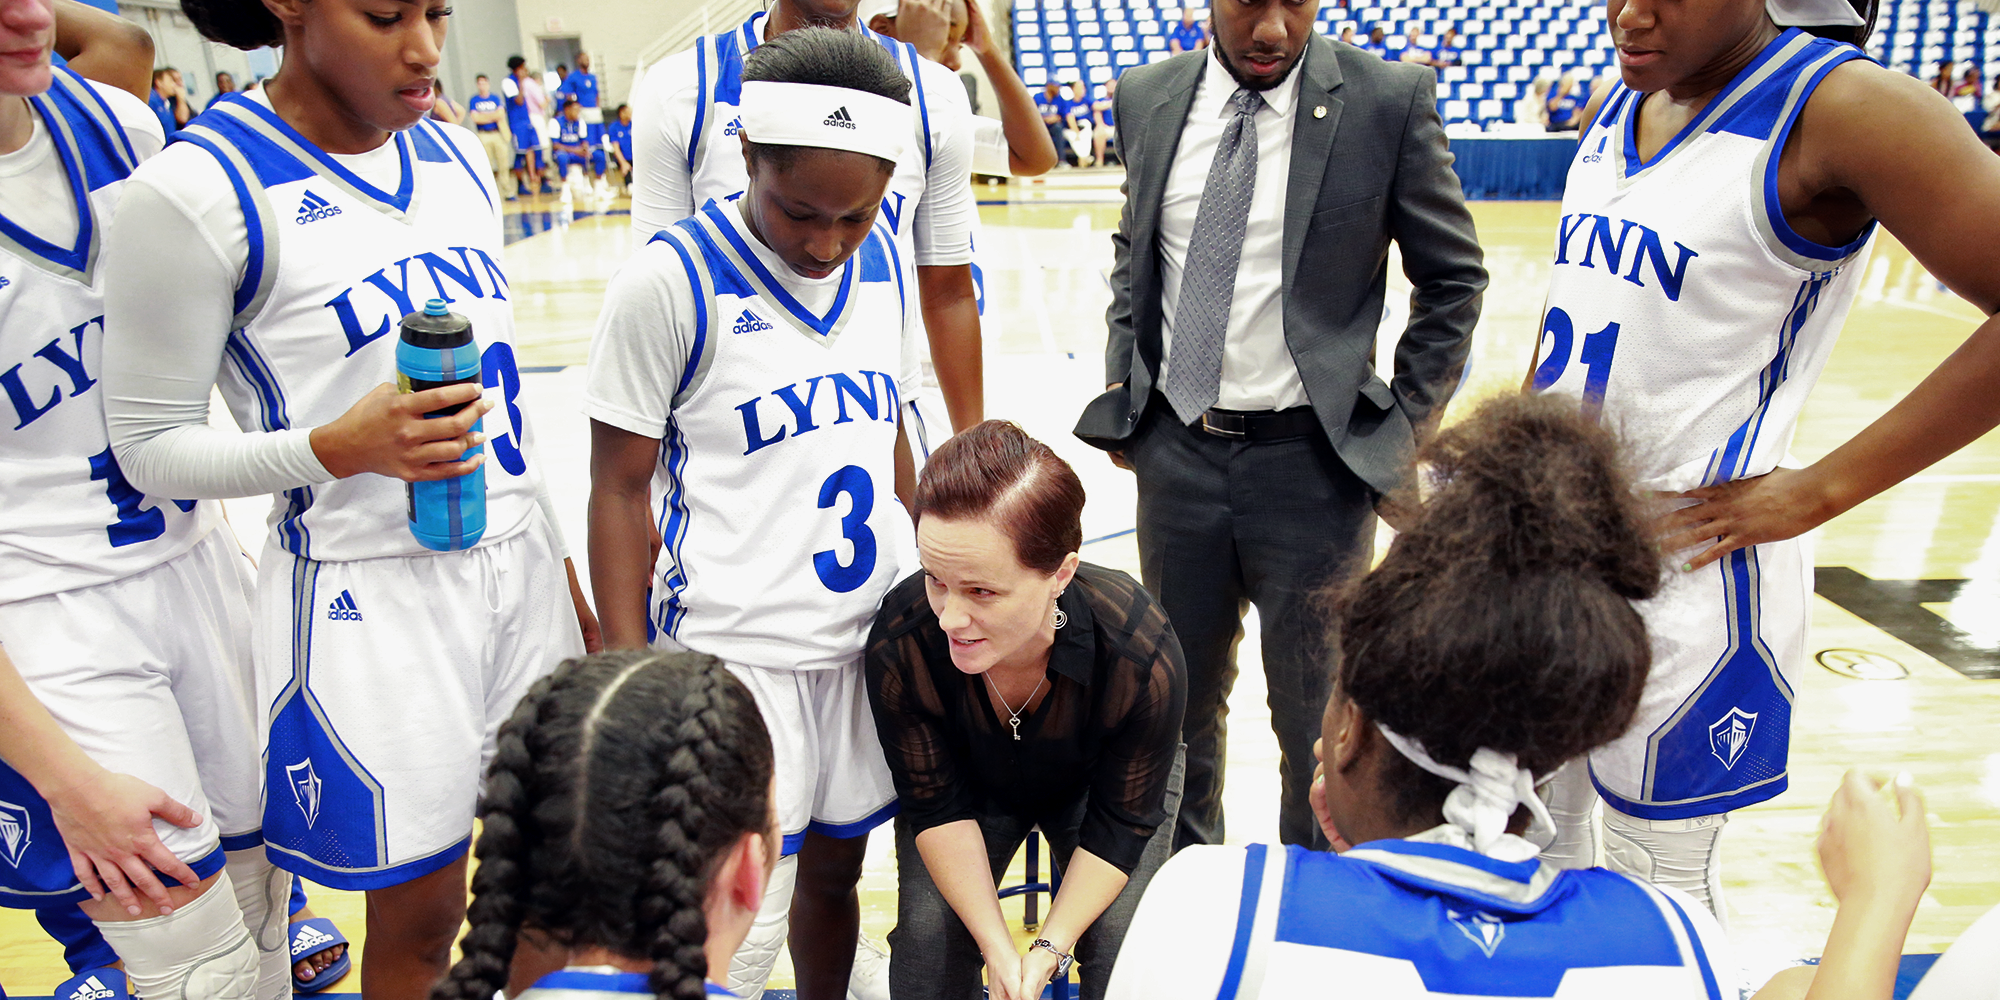 SEASON PREVIEW: 2017-18 #LynnWBK